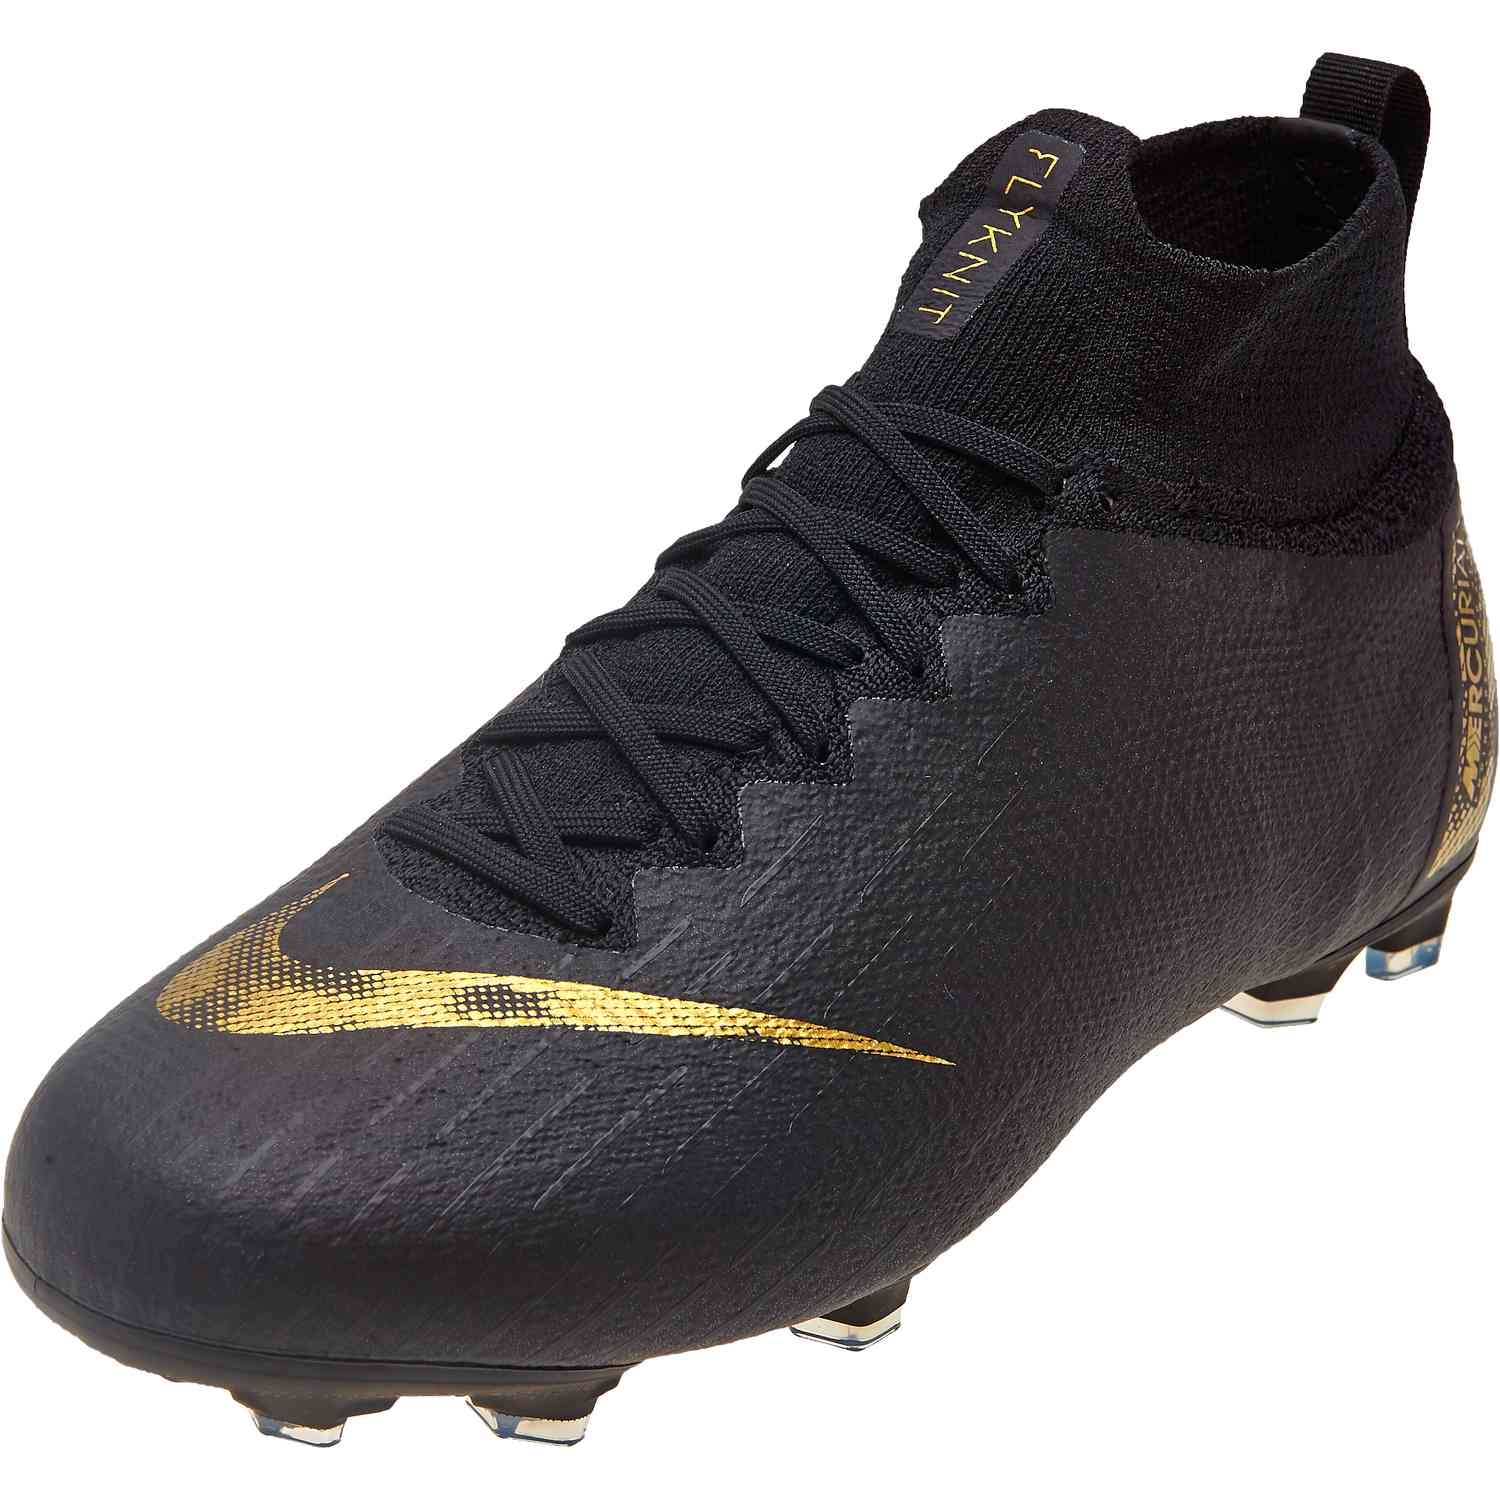 5c0b34ad7 Kids Nike Mercurial Superfly 6 Elite FG - Black Lux - SoccerPro